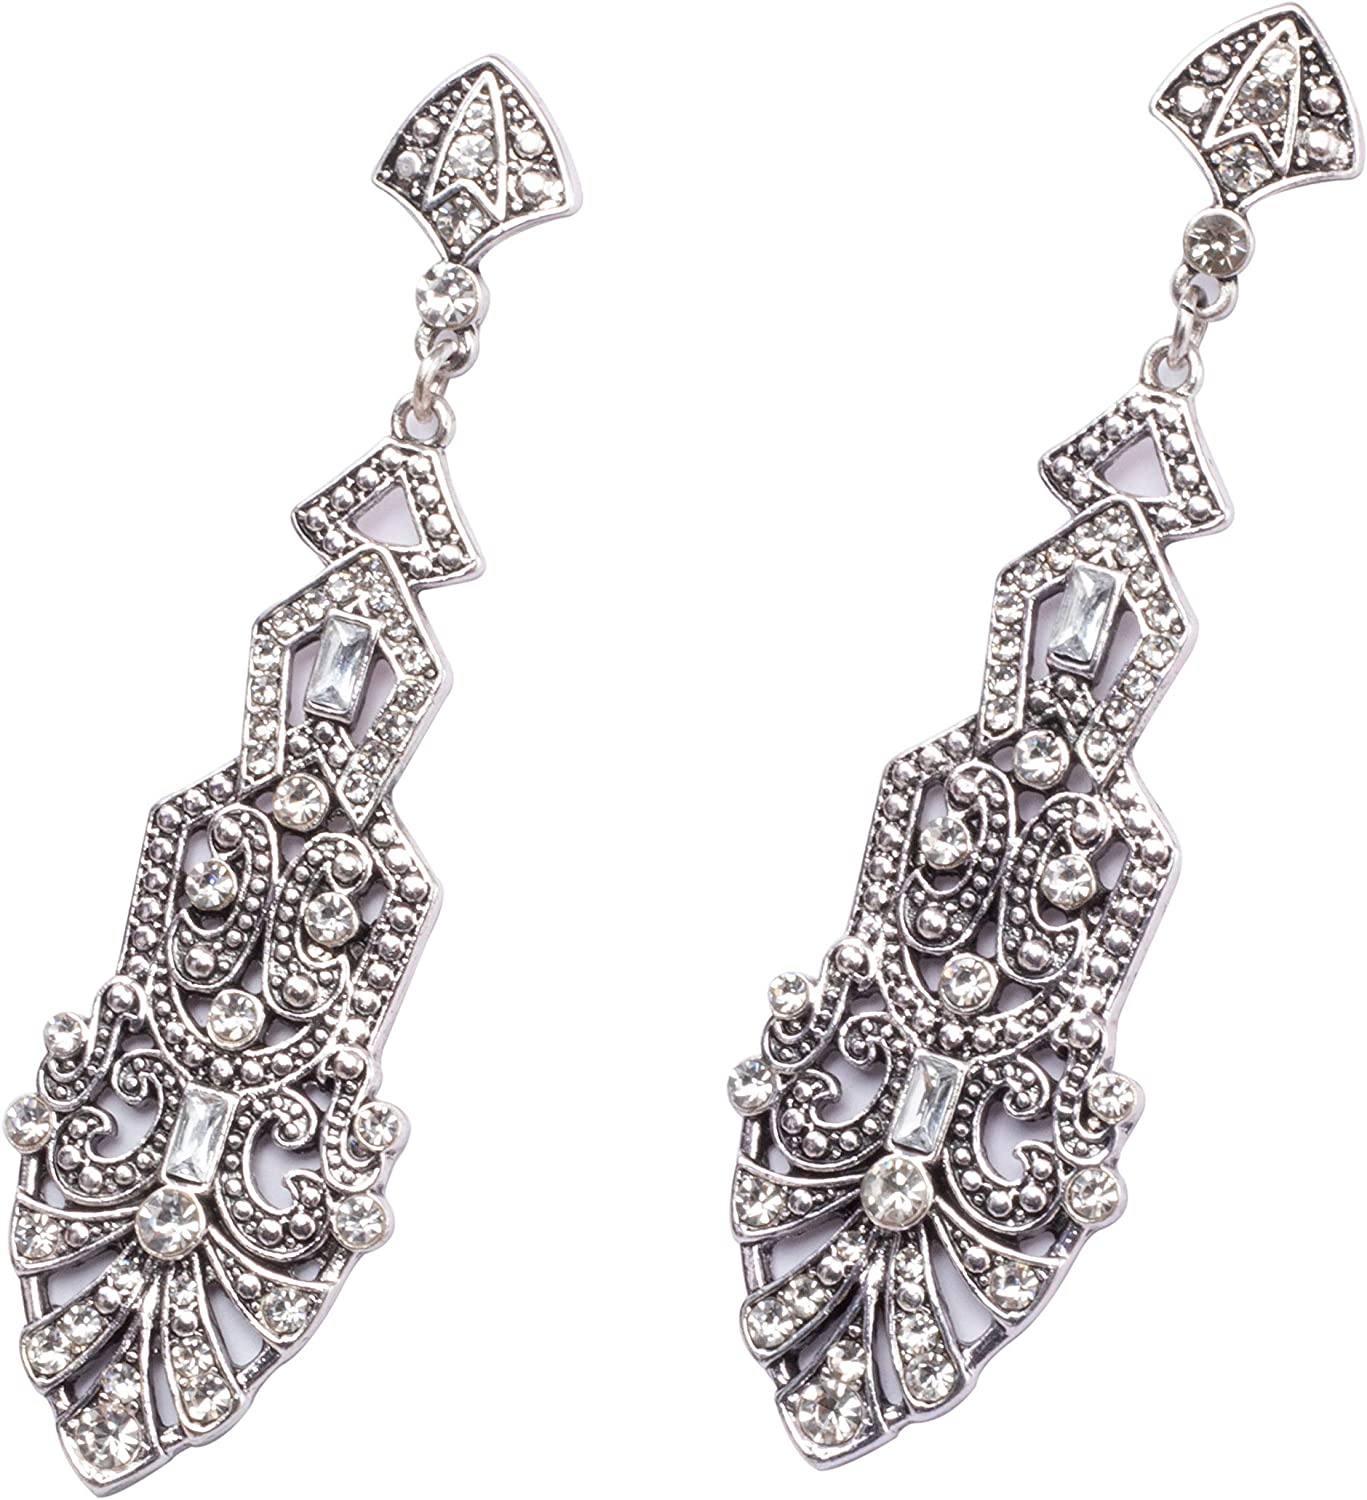 Downton Abbey Costumes Ideas Metme Great Gatsby Earrings for Women 1920s Flapper Dangle Earrings Vintage Art Deco Earrings 20s Costume Accessories $12.99 AT vintagedancer.com